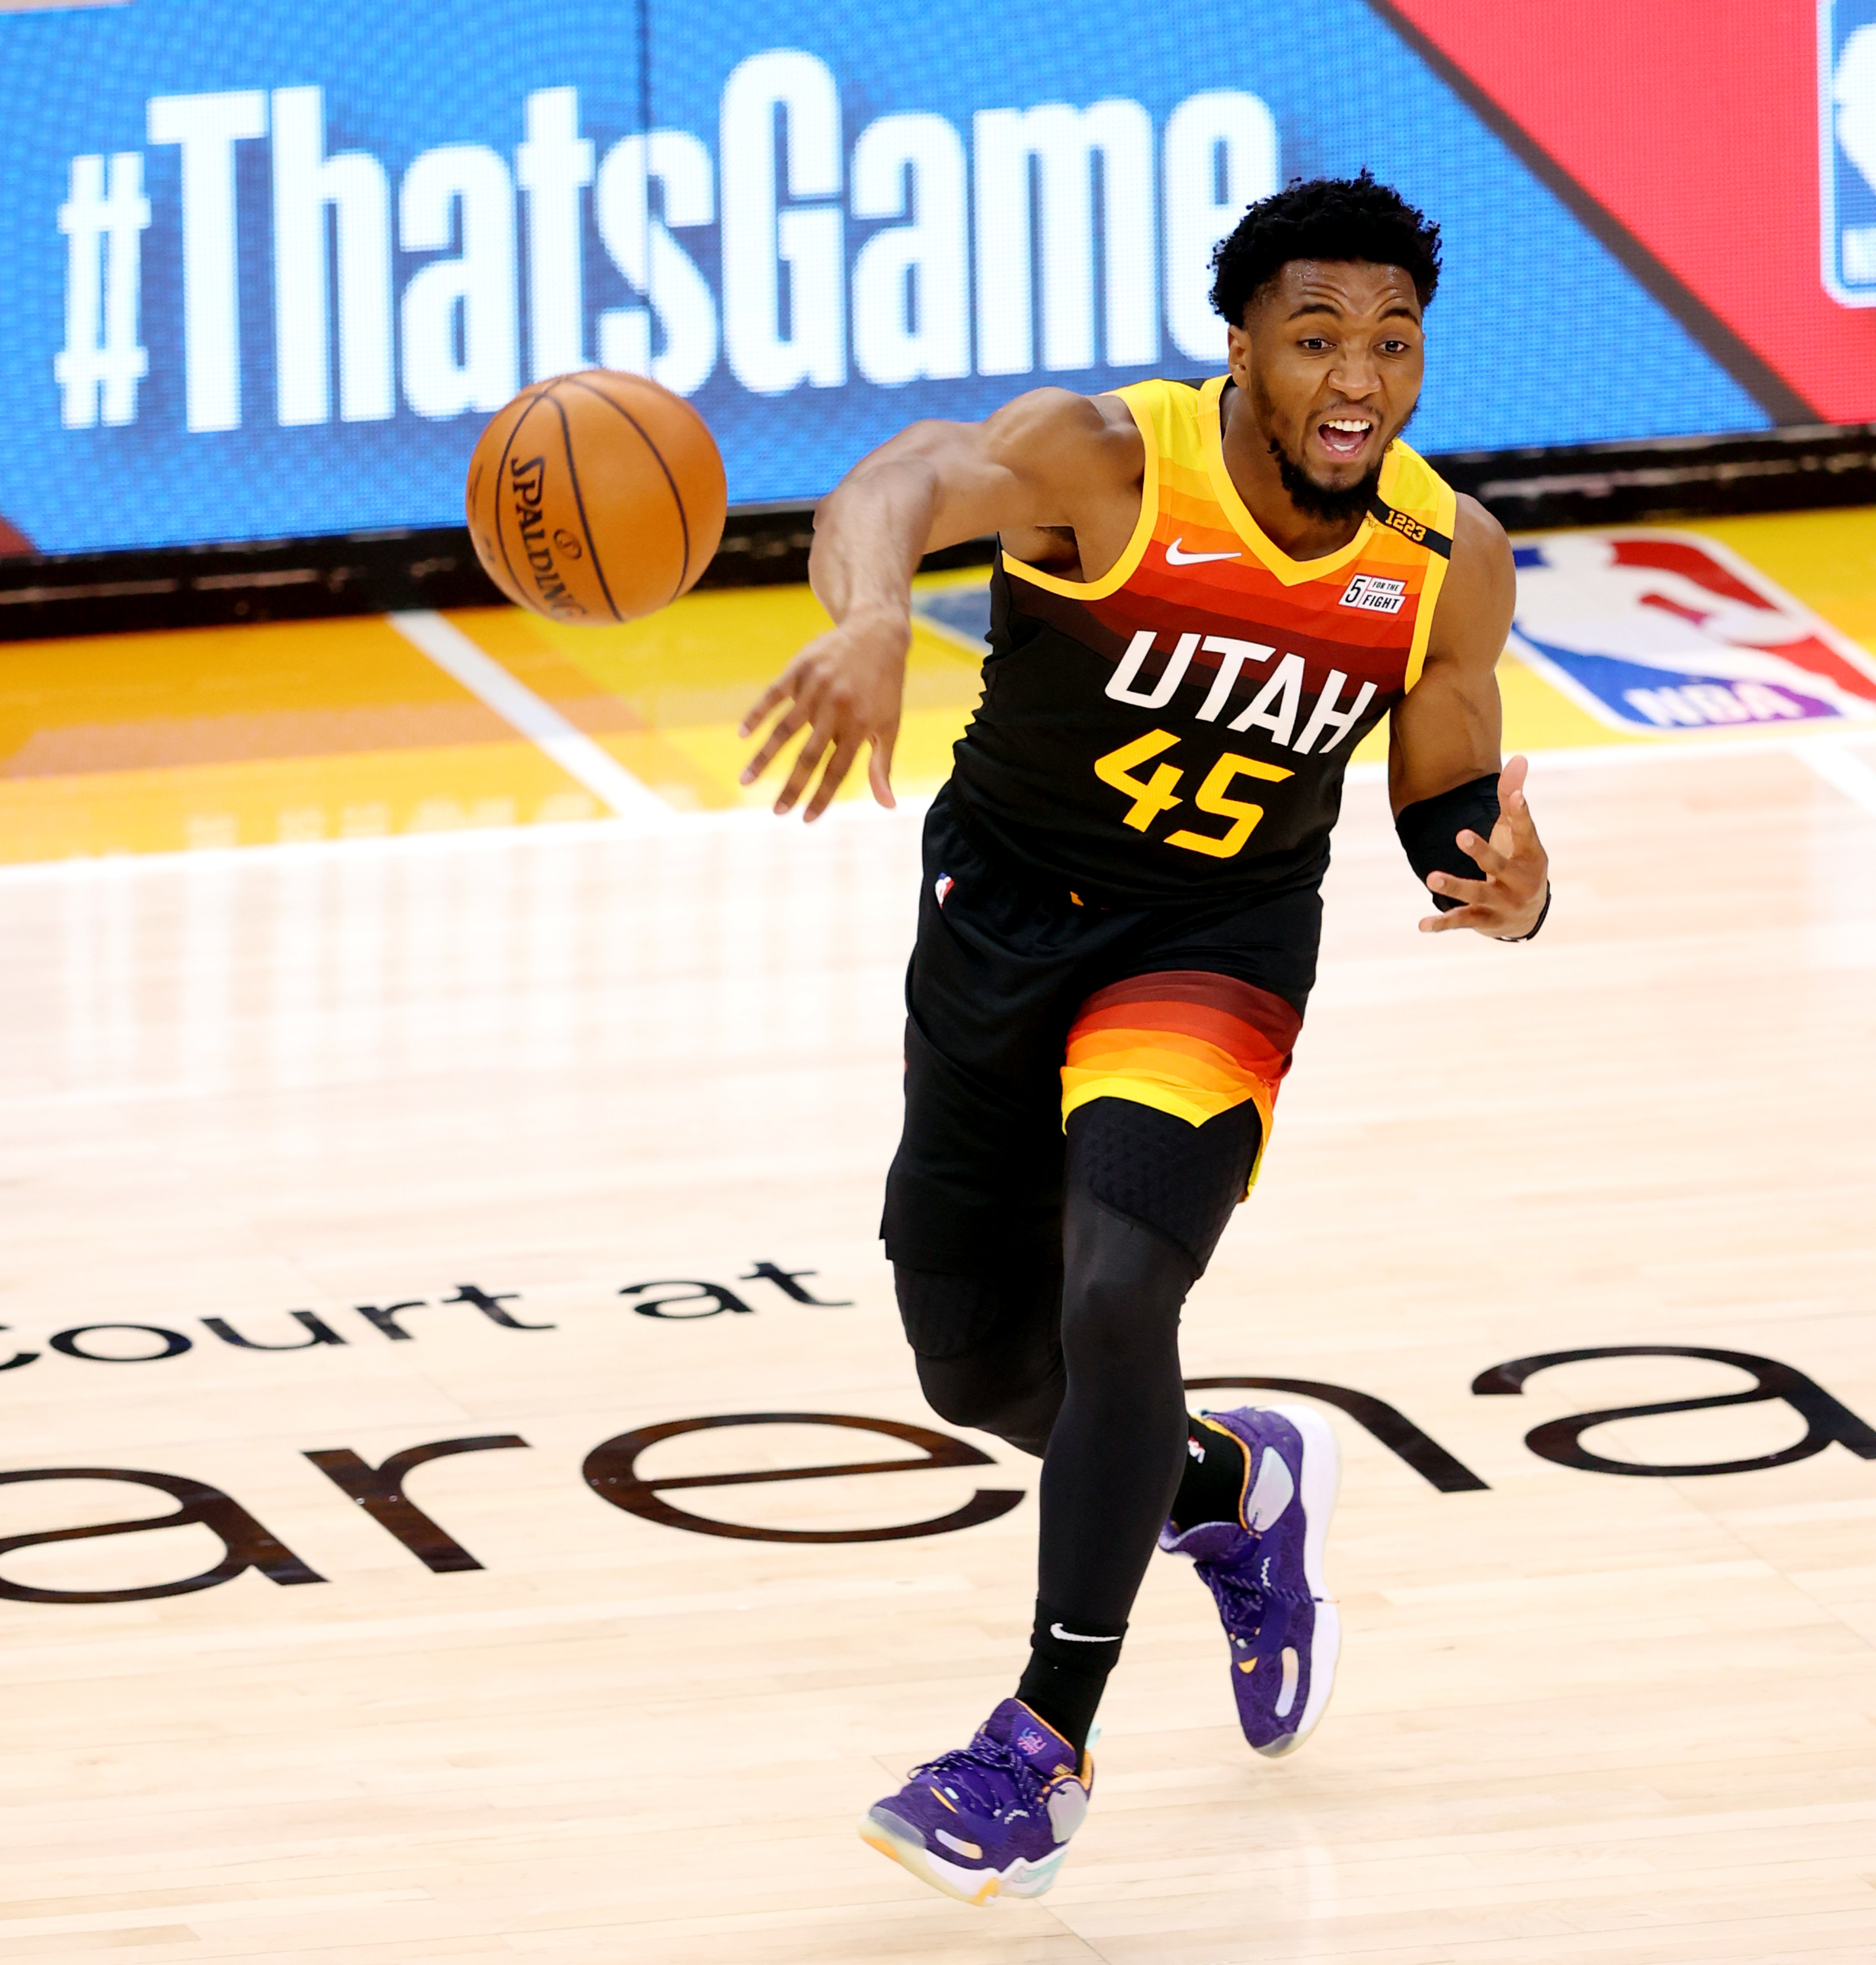 Utah Jazz guard Donovan Mitchell passes the ball in Game 5 against the Memphis Grizzlies.